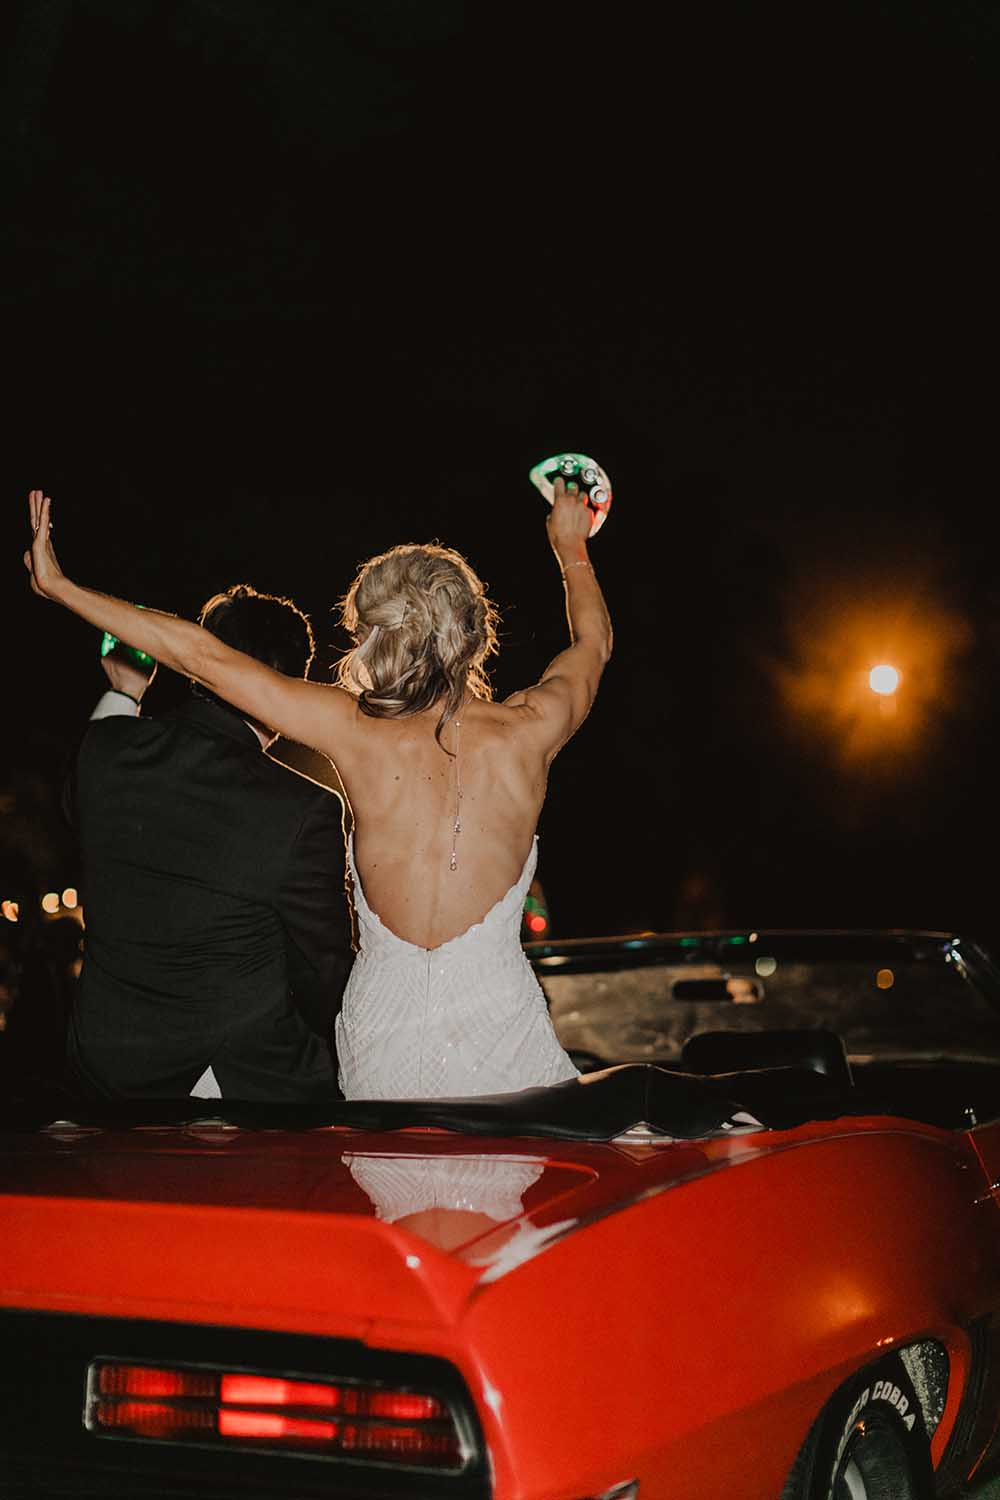 Bride & Groom Leaving in Red Convertible | photo by Emily Green Photography | featured on I Do Y'all